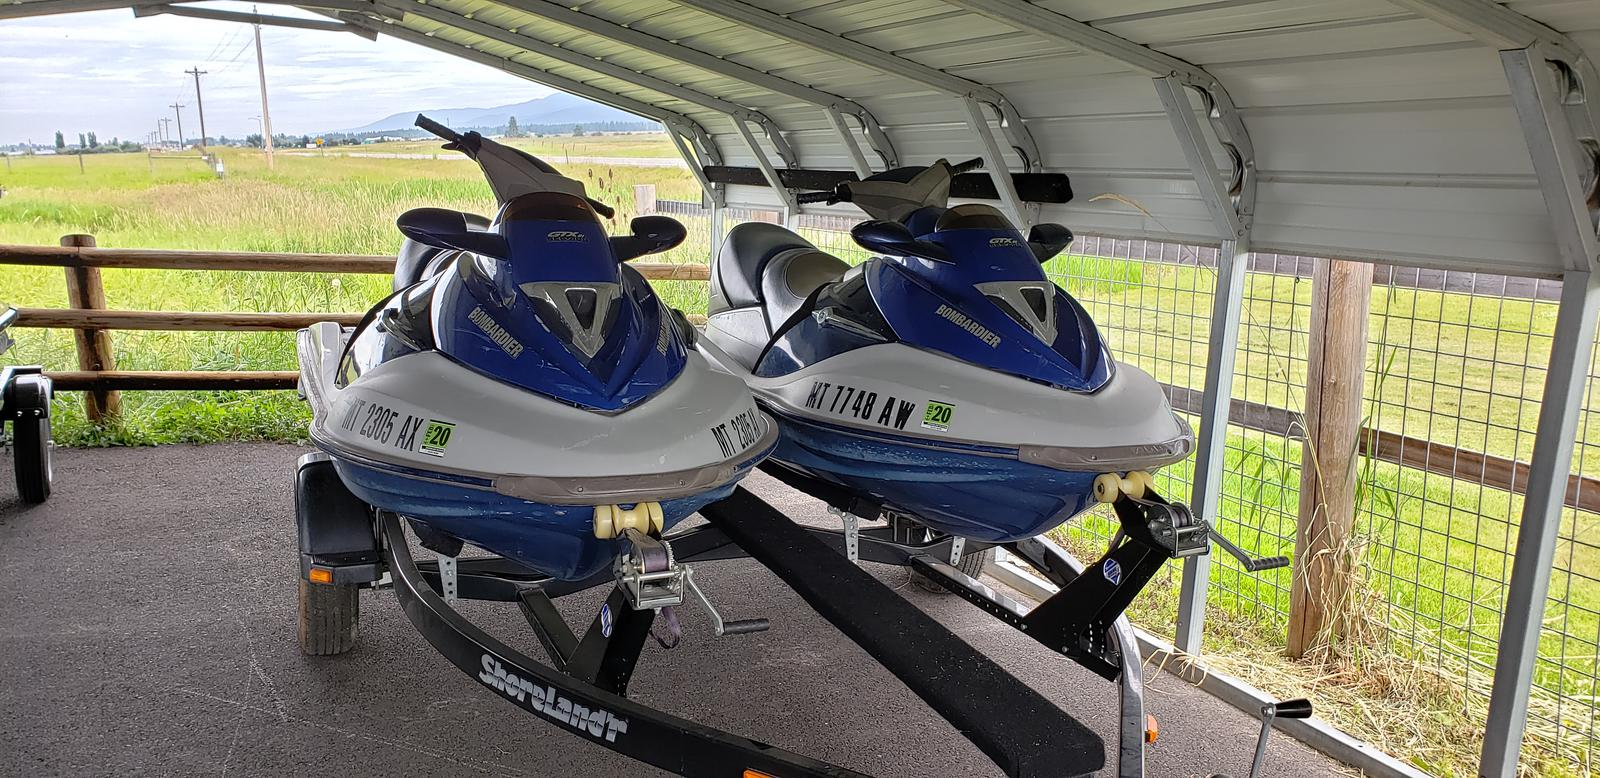 Inventory from Sea-Doo S & S Sports